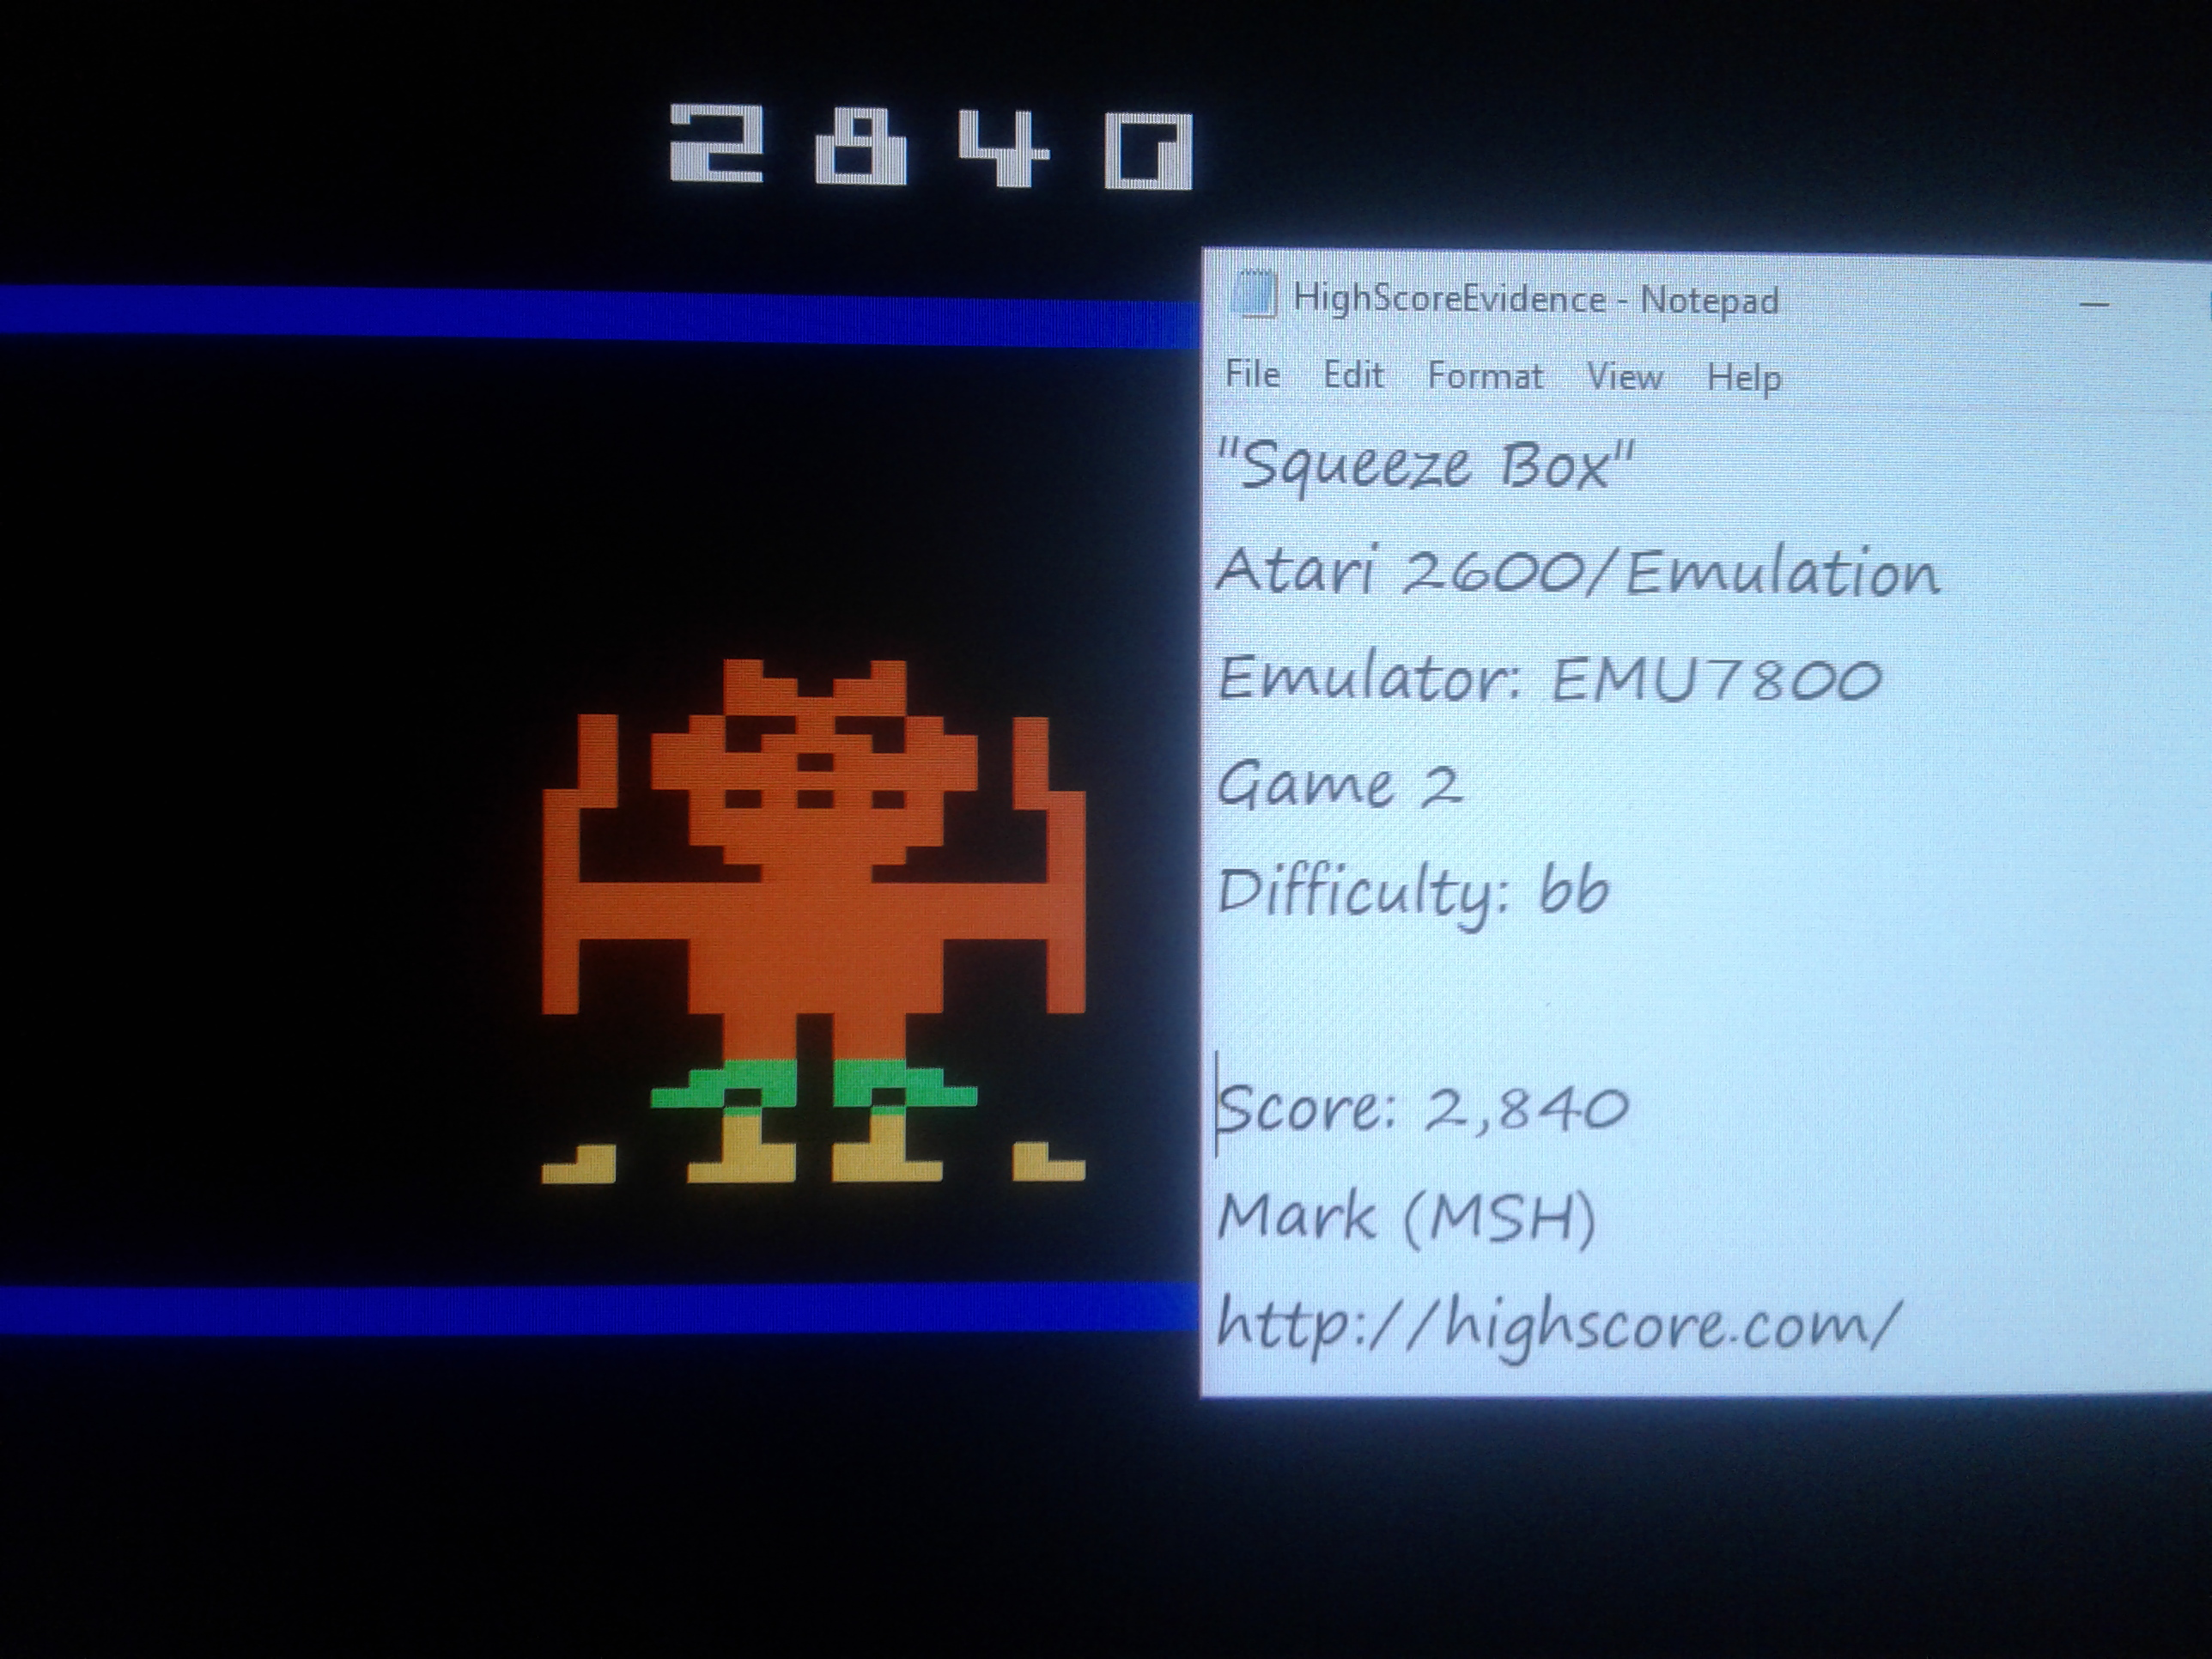 Mark: Squeeze Box: Game 2 [Difficulty BB] (Atari 2600 Emulated) 2,840 points on 2019-01-23 23:24:49